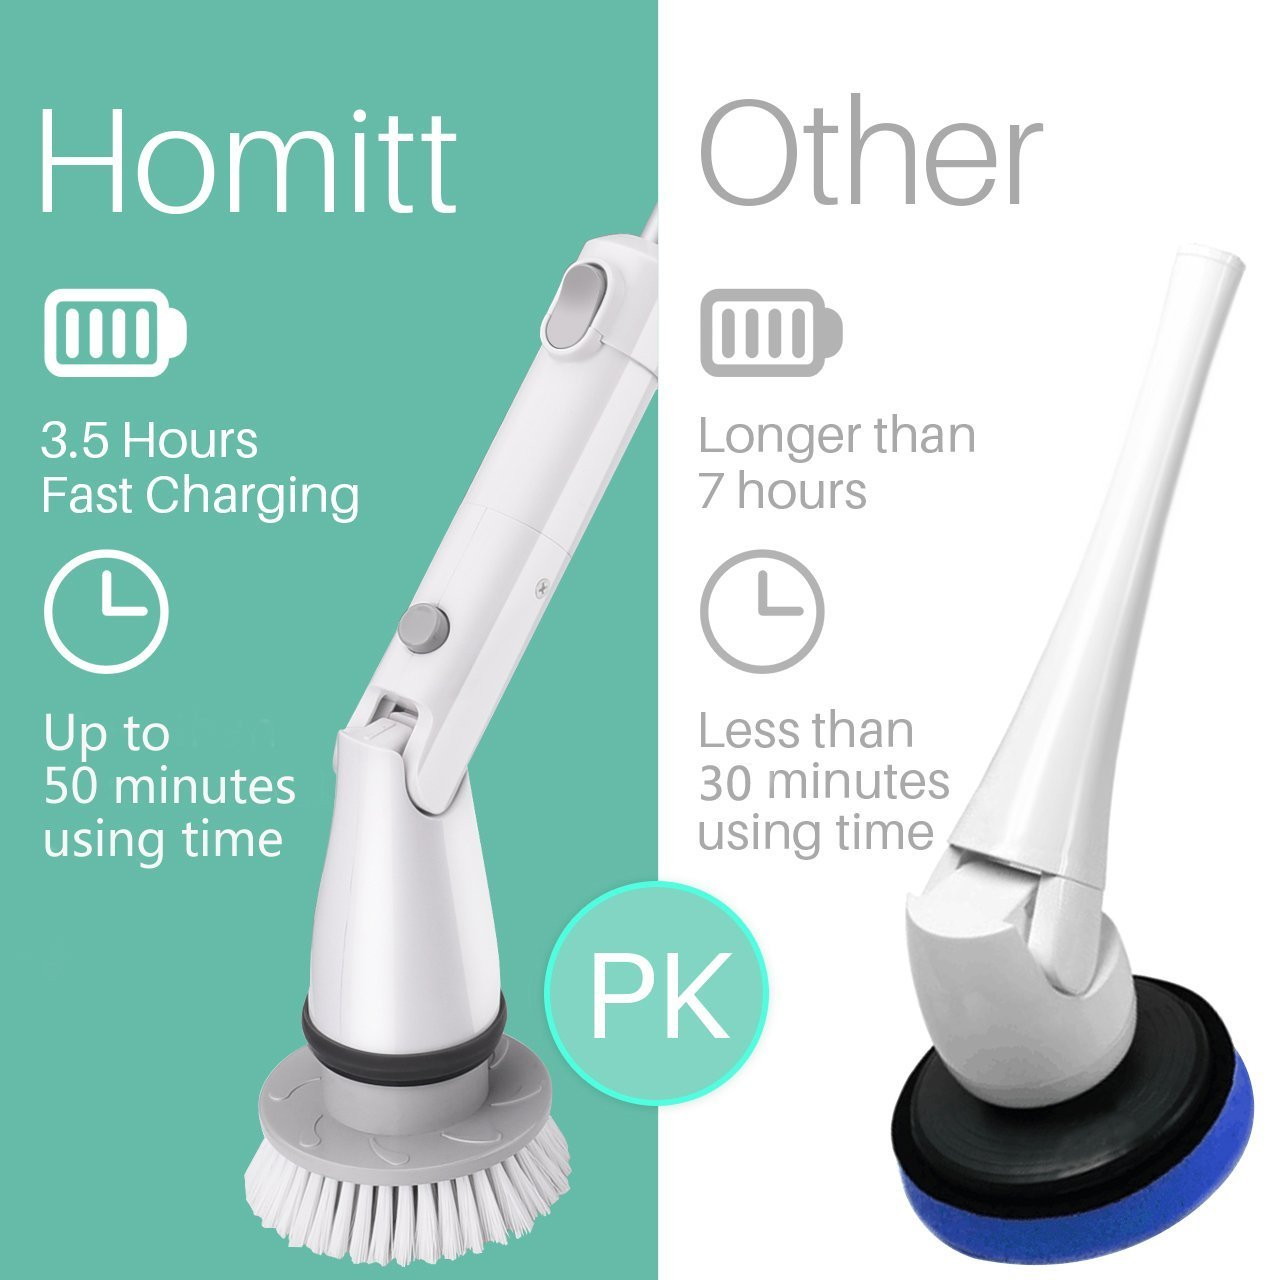 Homitt Electric Spin Scrubber, 360 Cordless Bathroom Scrubber with 4 Replaceable Cleaning Shower Scrubber Brush Heads, 1 Extension Arm and Adapter for Tub, Tile, Floor, Wall and Kitchen by Homitt (Image #5)